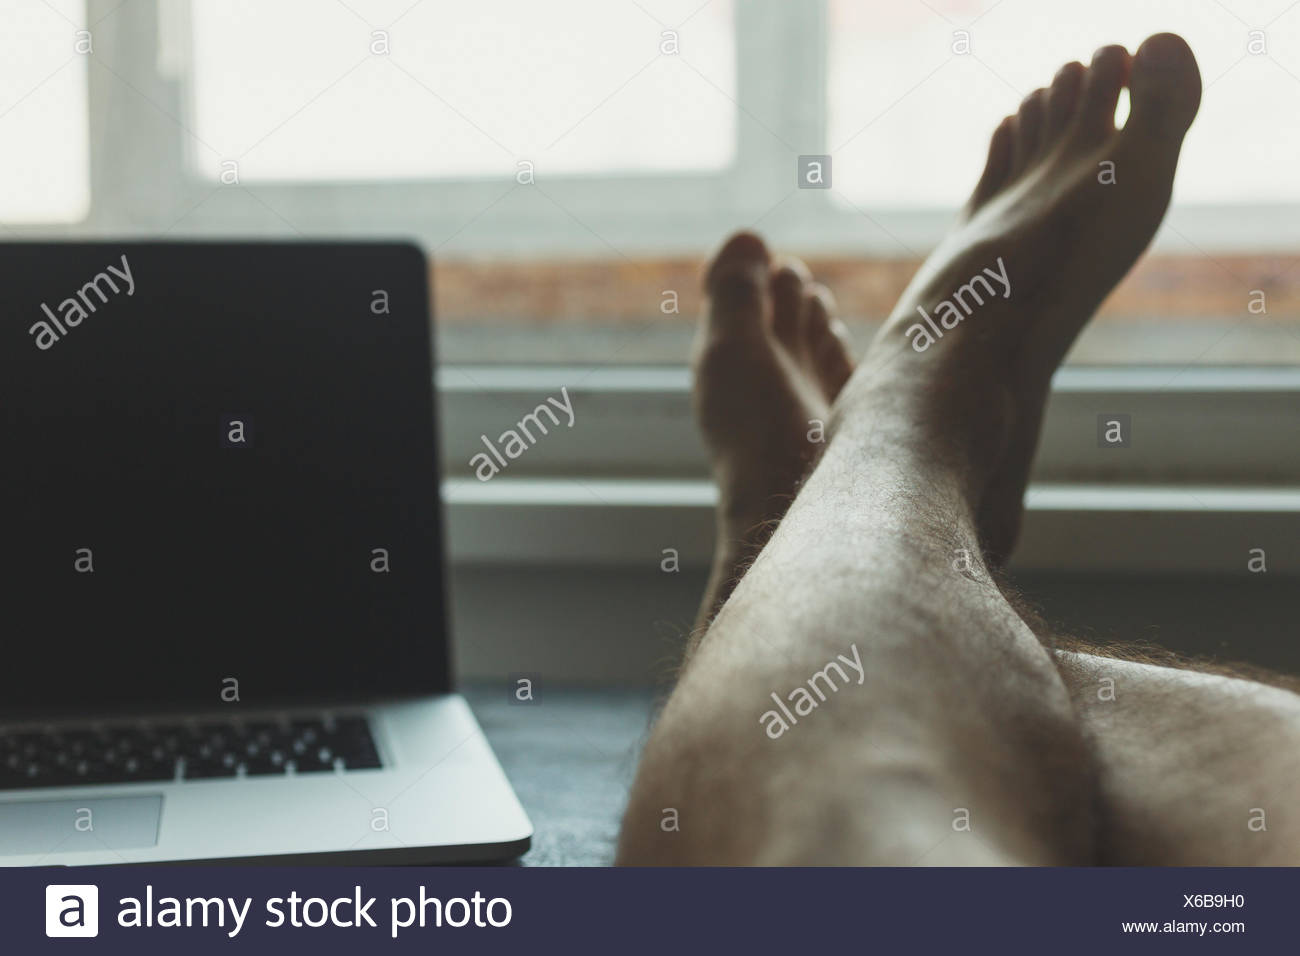 Man took a break from work - Stock Image